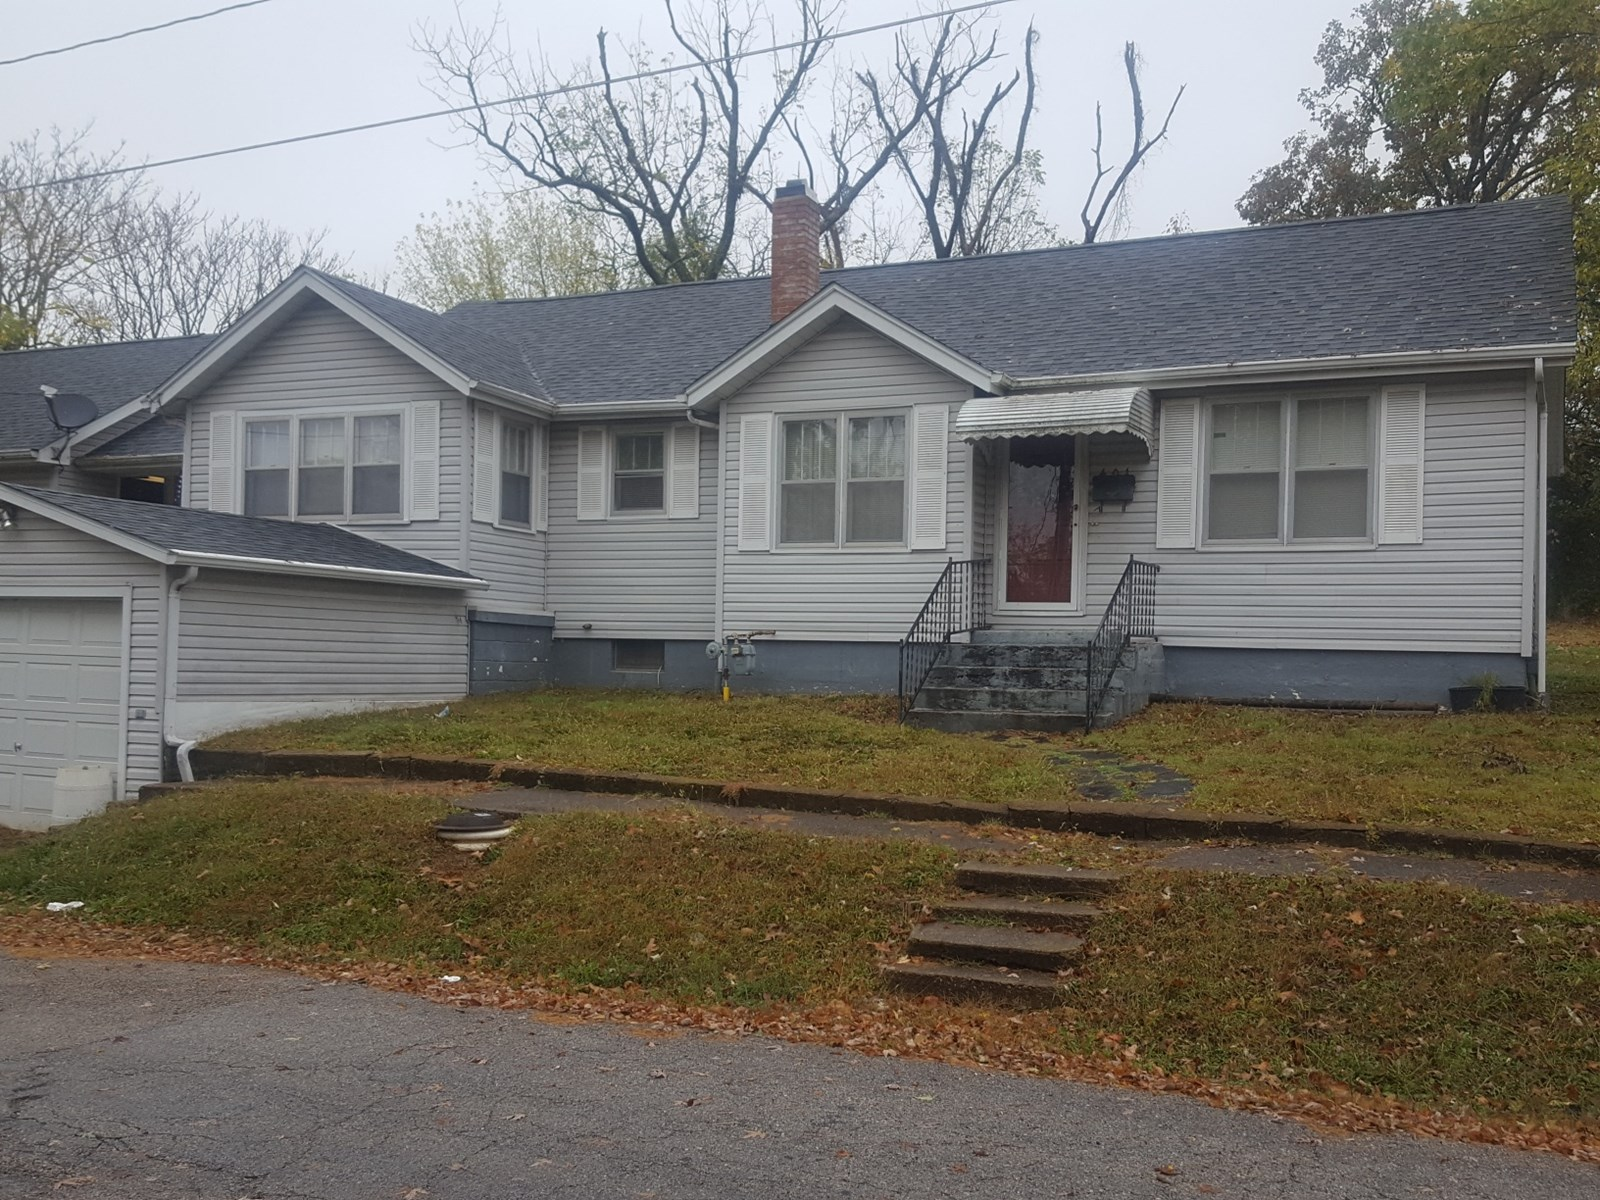 House in Town for Sale in Willow Springs, Missouri